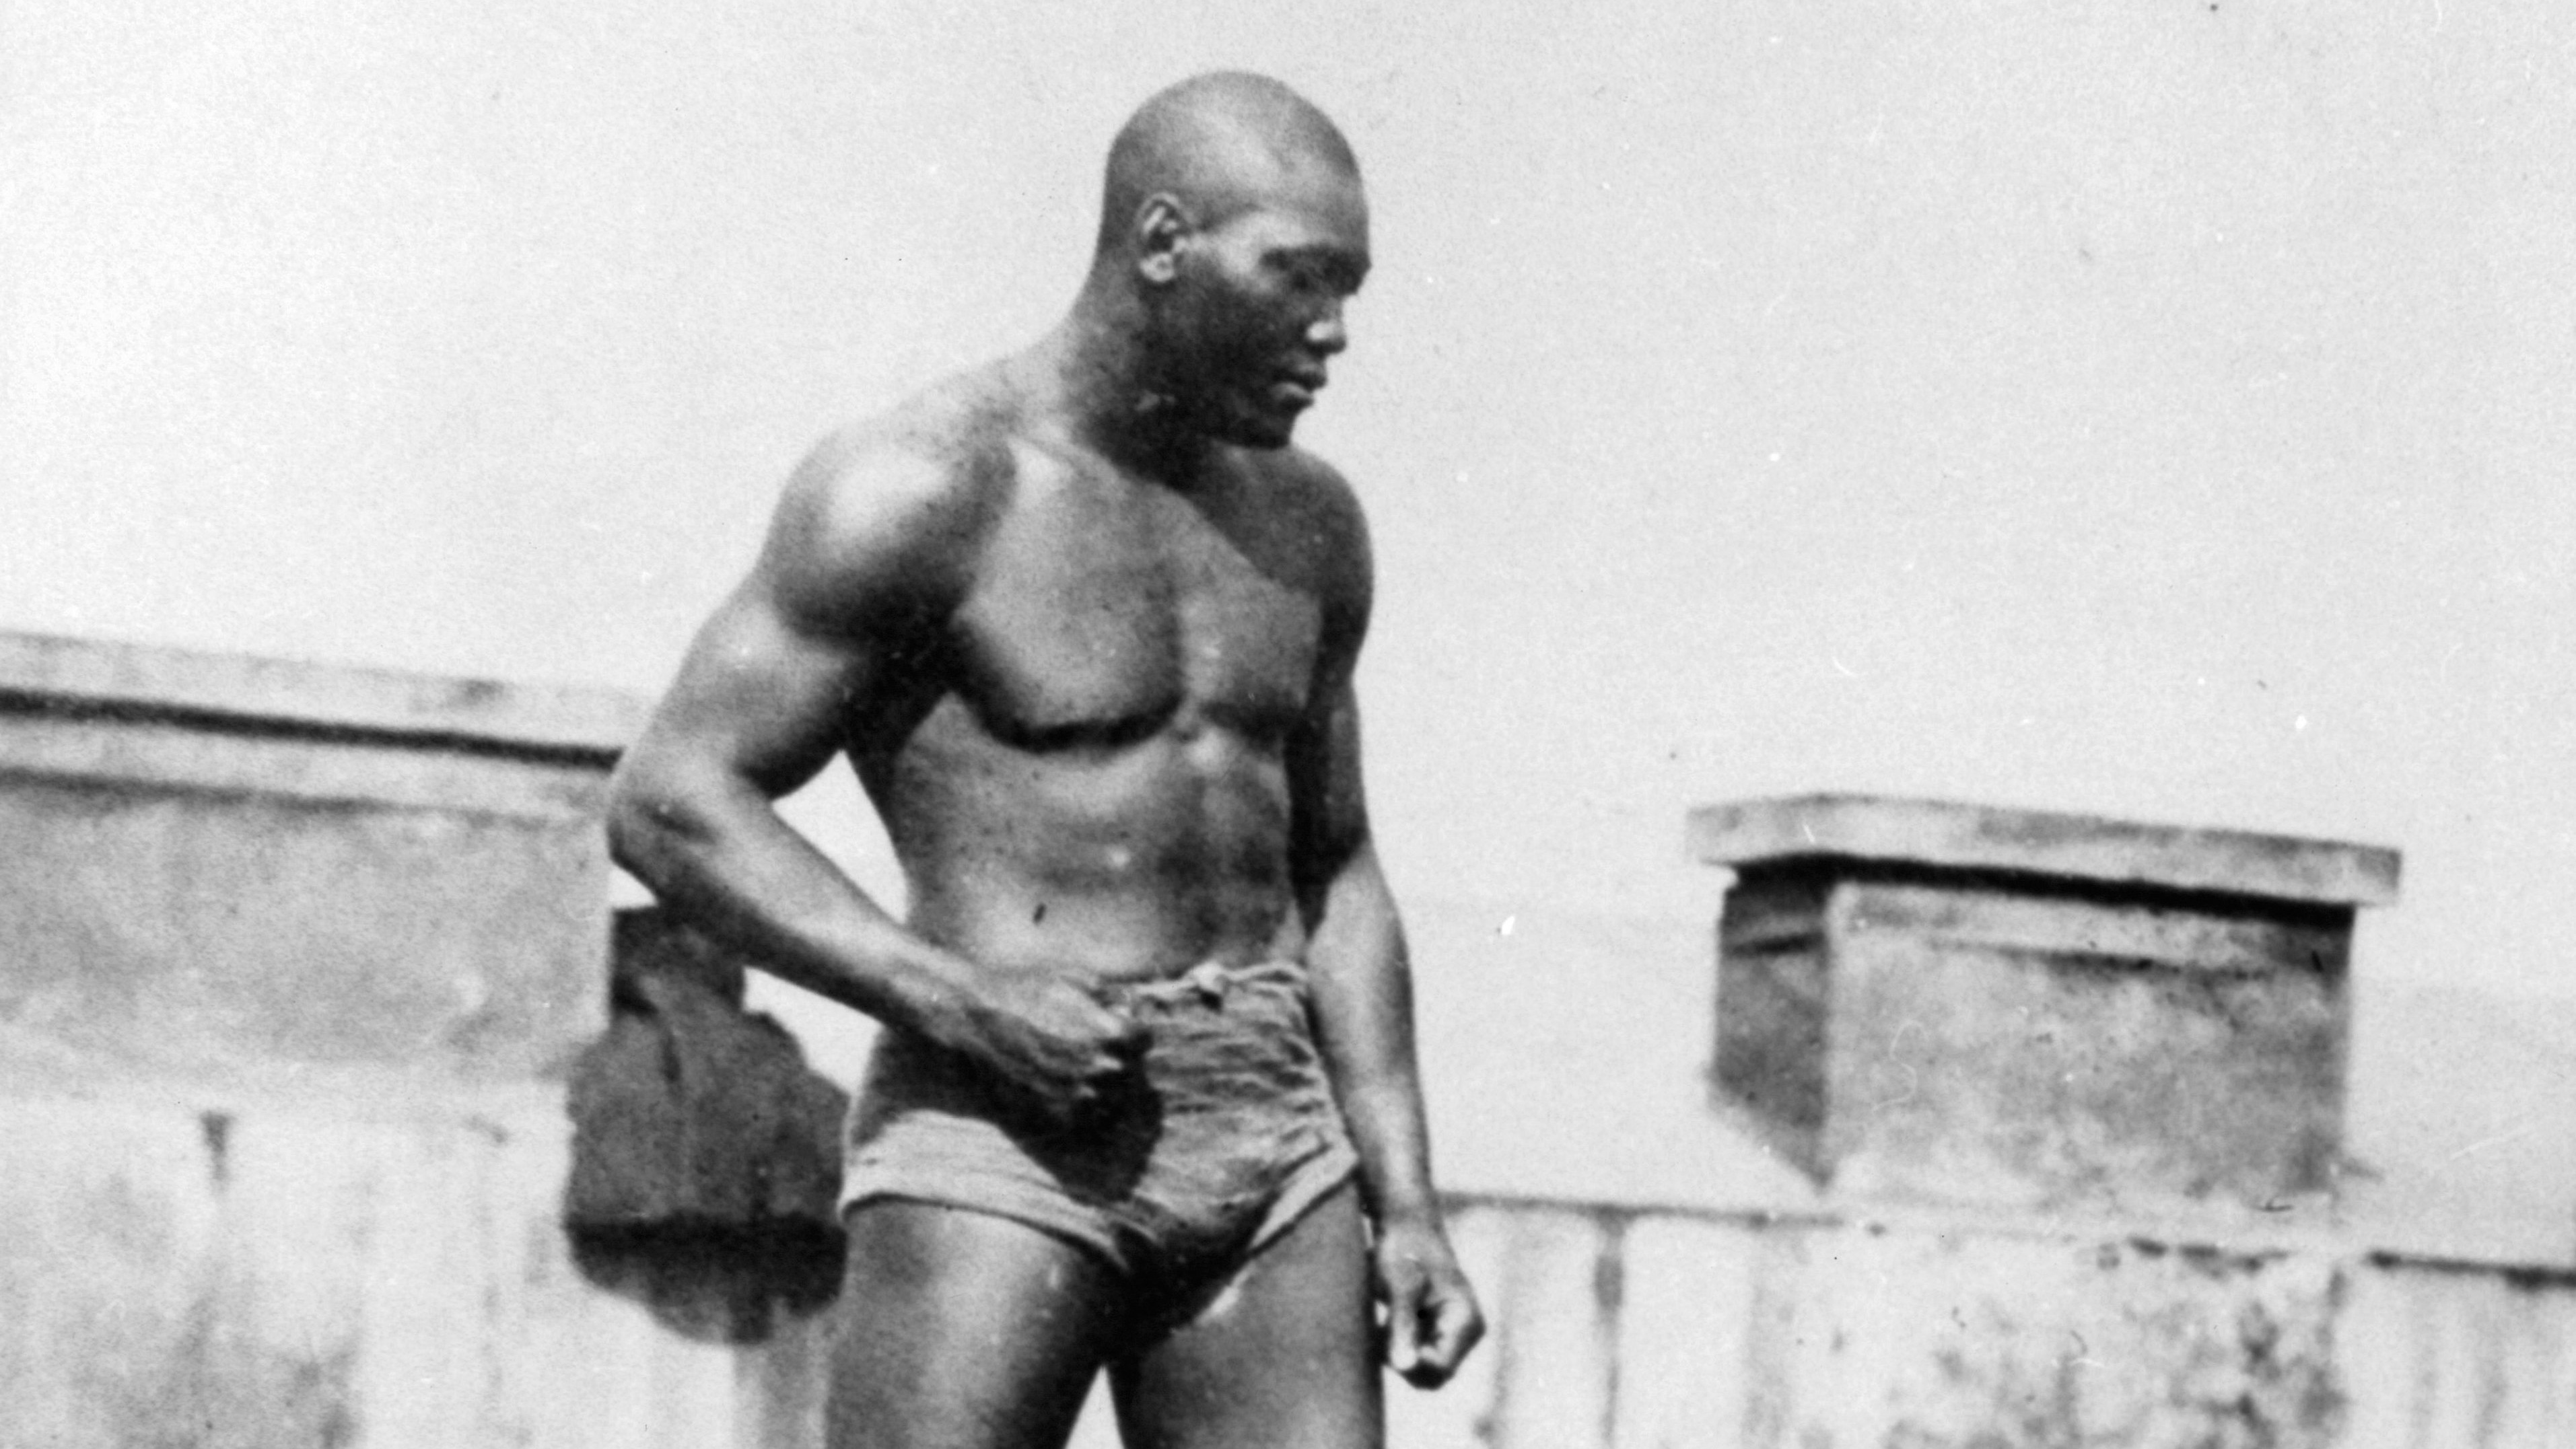 The Thanksgiving an imprisoned Jack Johnson fought two men at Leavenworth